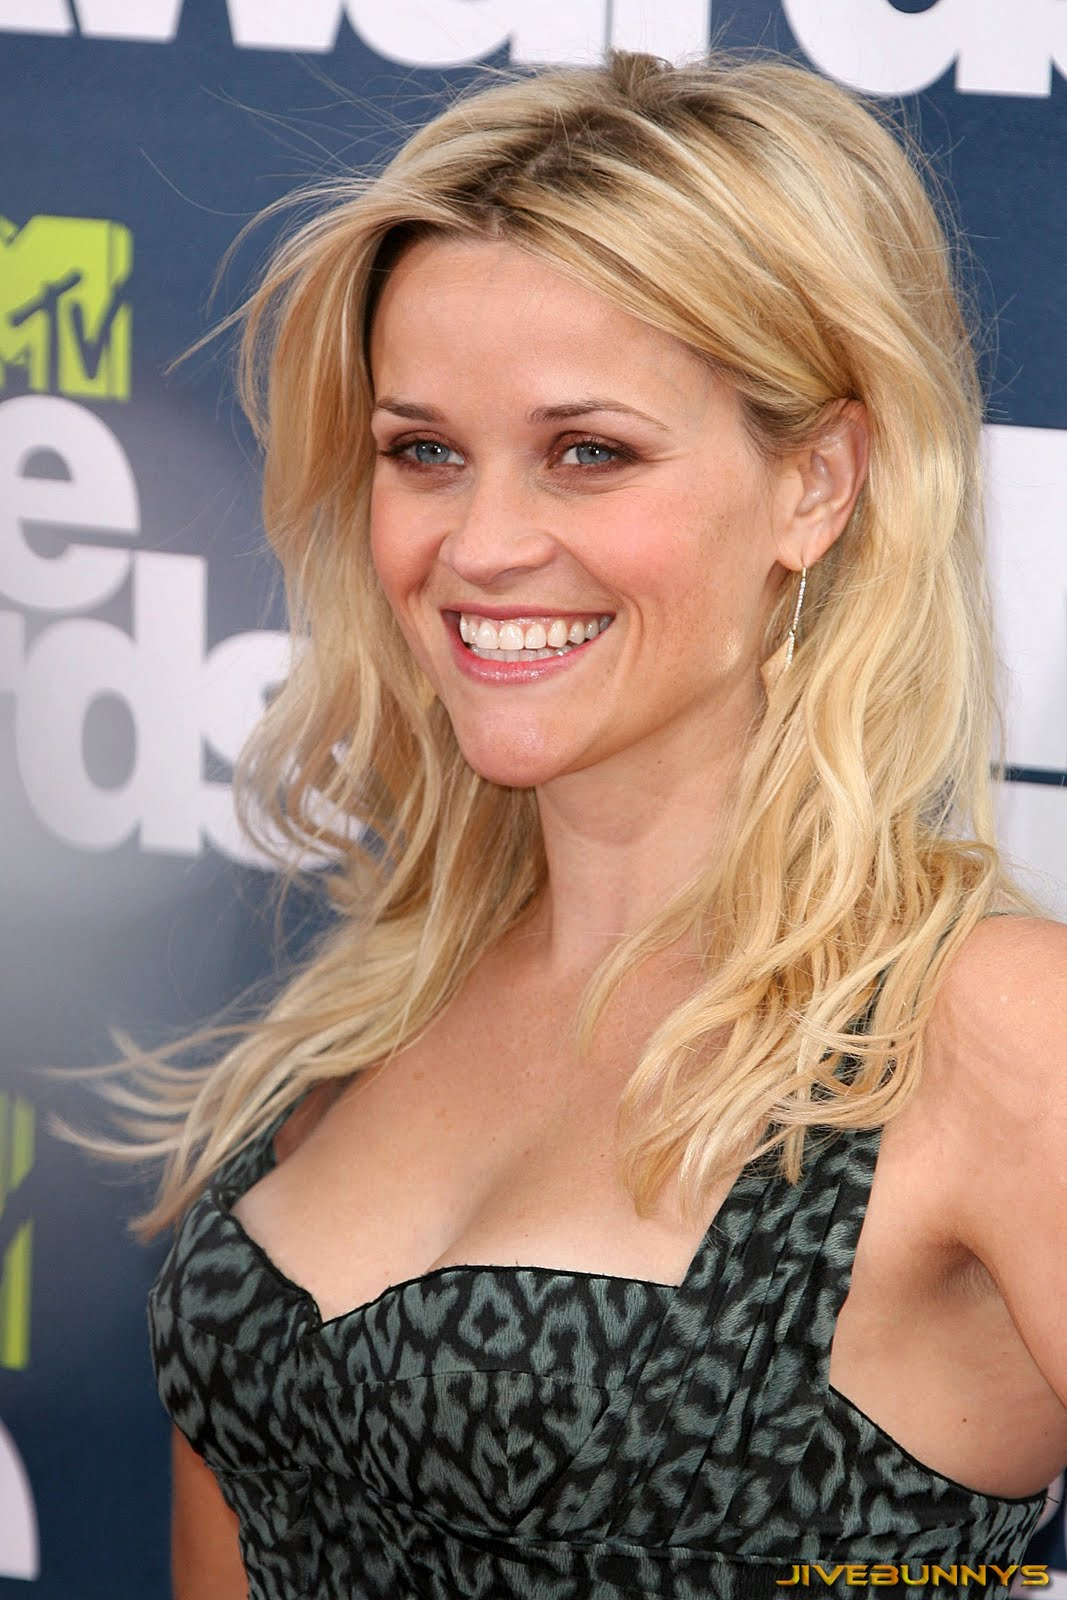 CELEBS NUDE: Reese Witherspoon